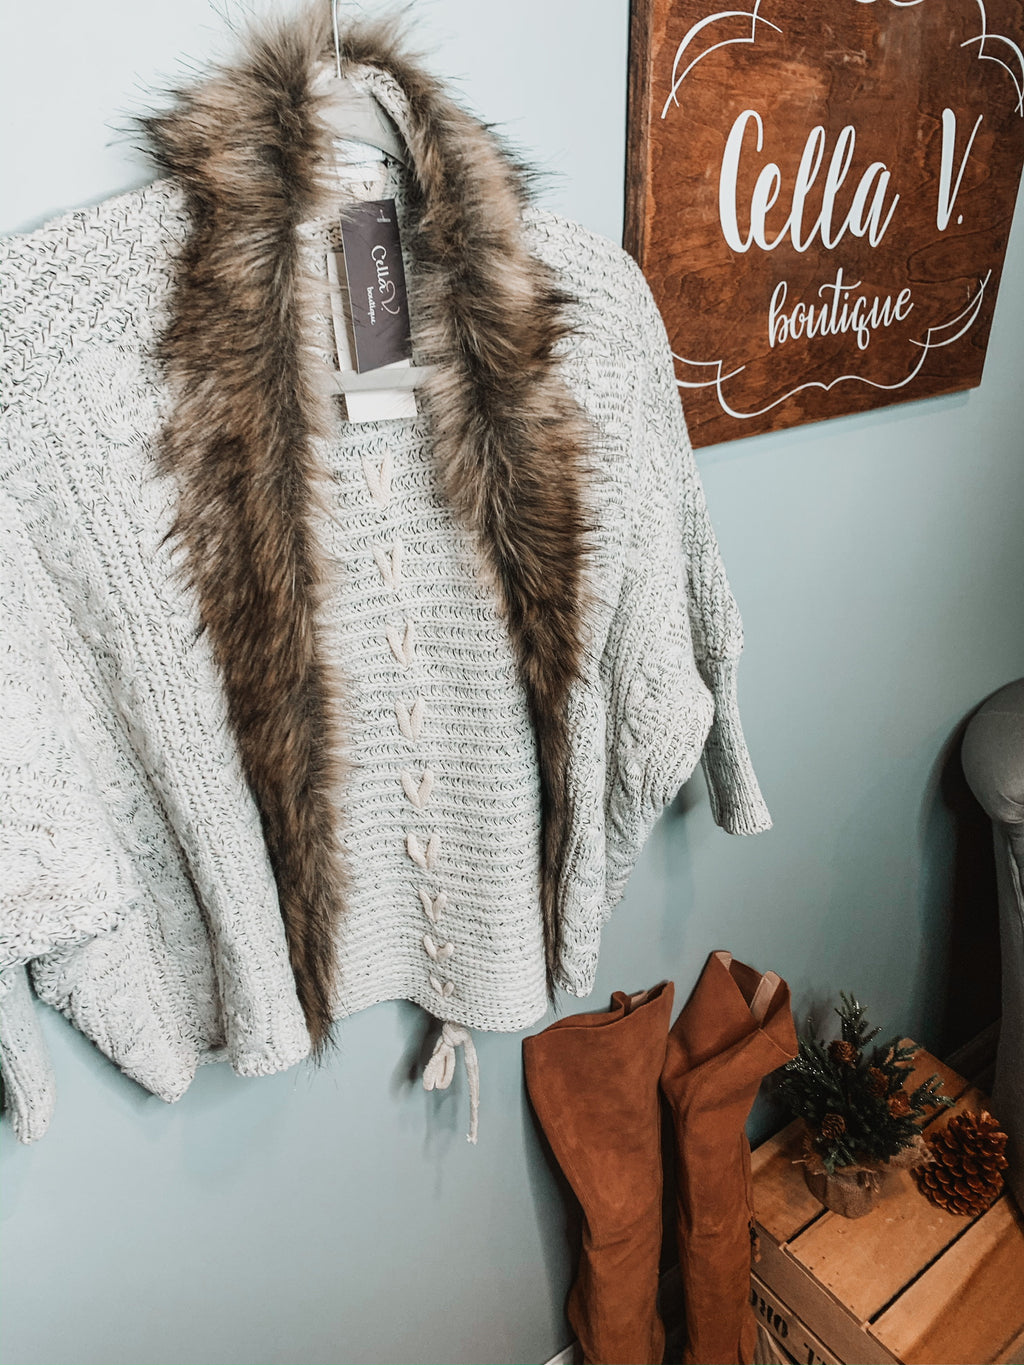 Woven knit cardigan with faux fur detail on edge